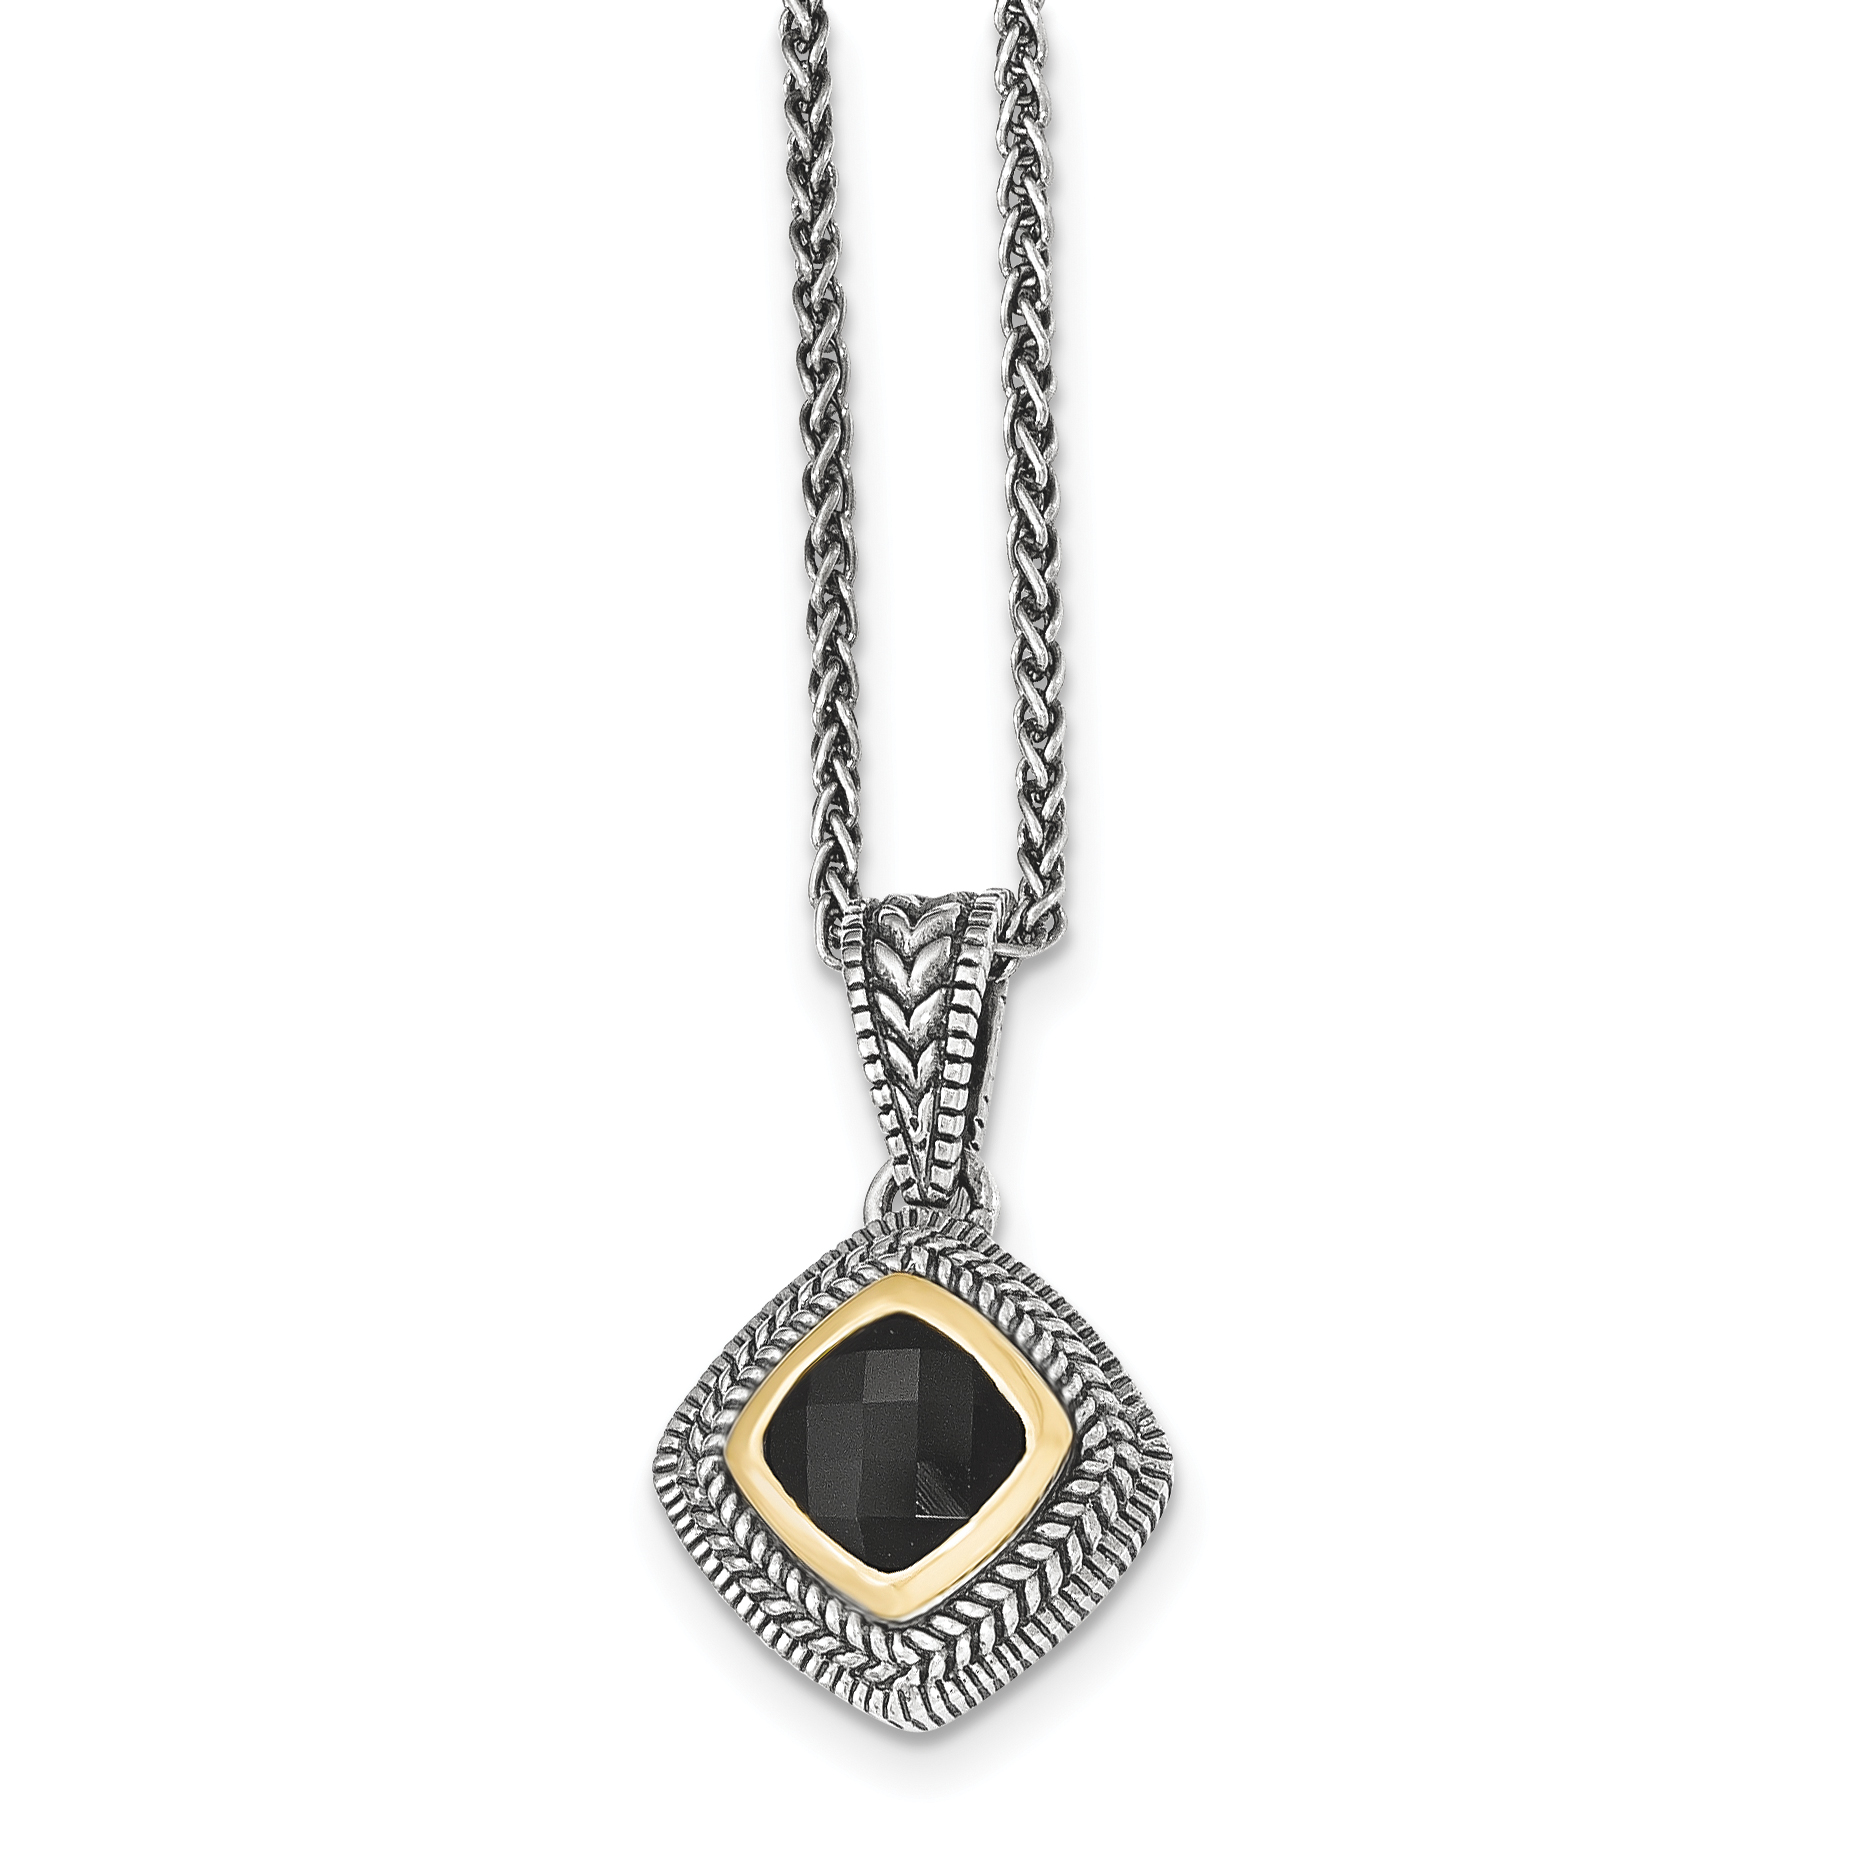 Sterling Silver Two Tone Silver And Gold Plated Sterling Silver w/Black Onyx Necklace - image 2 of 2